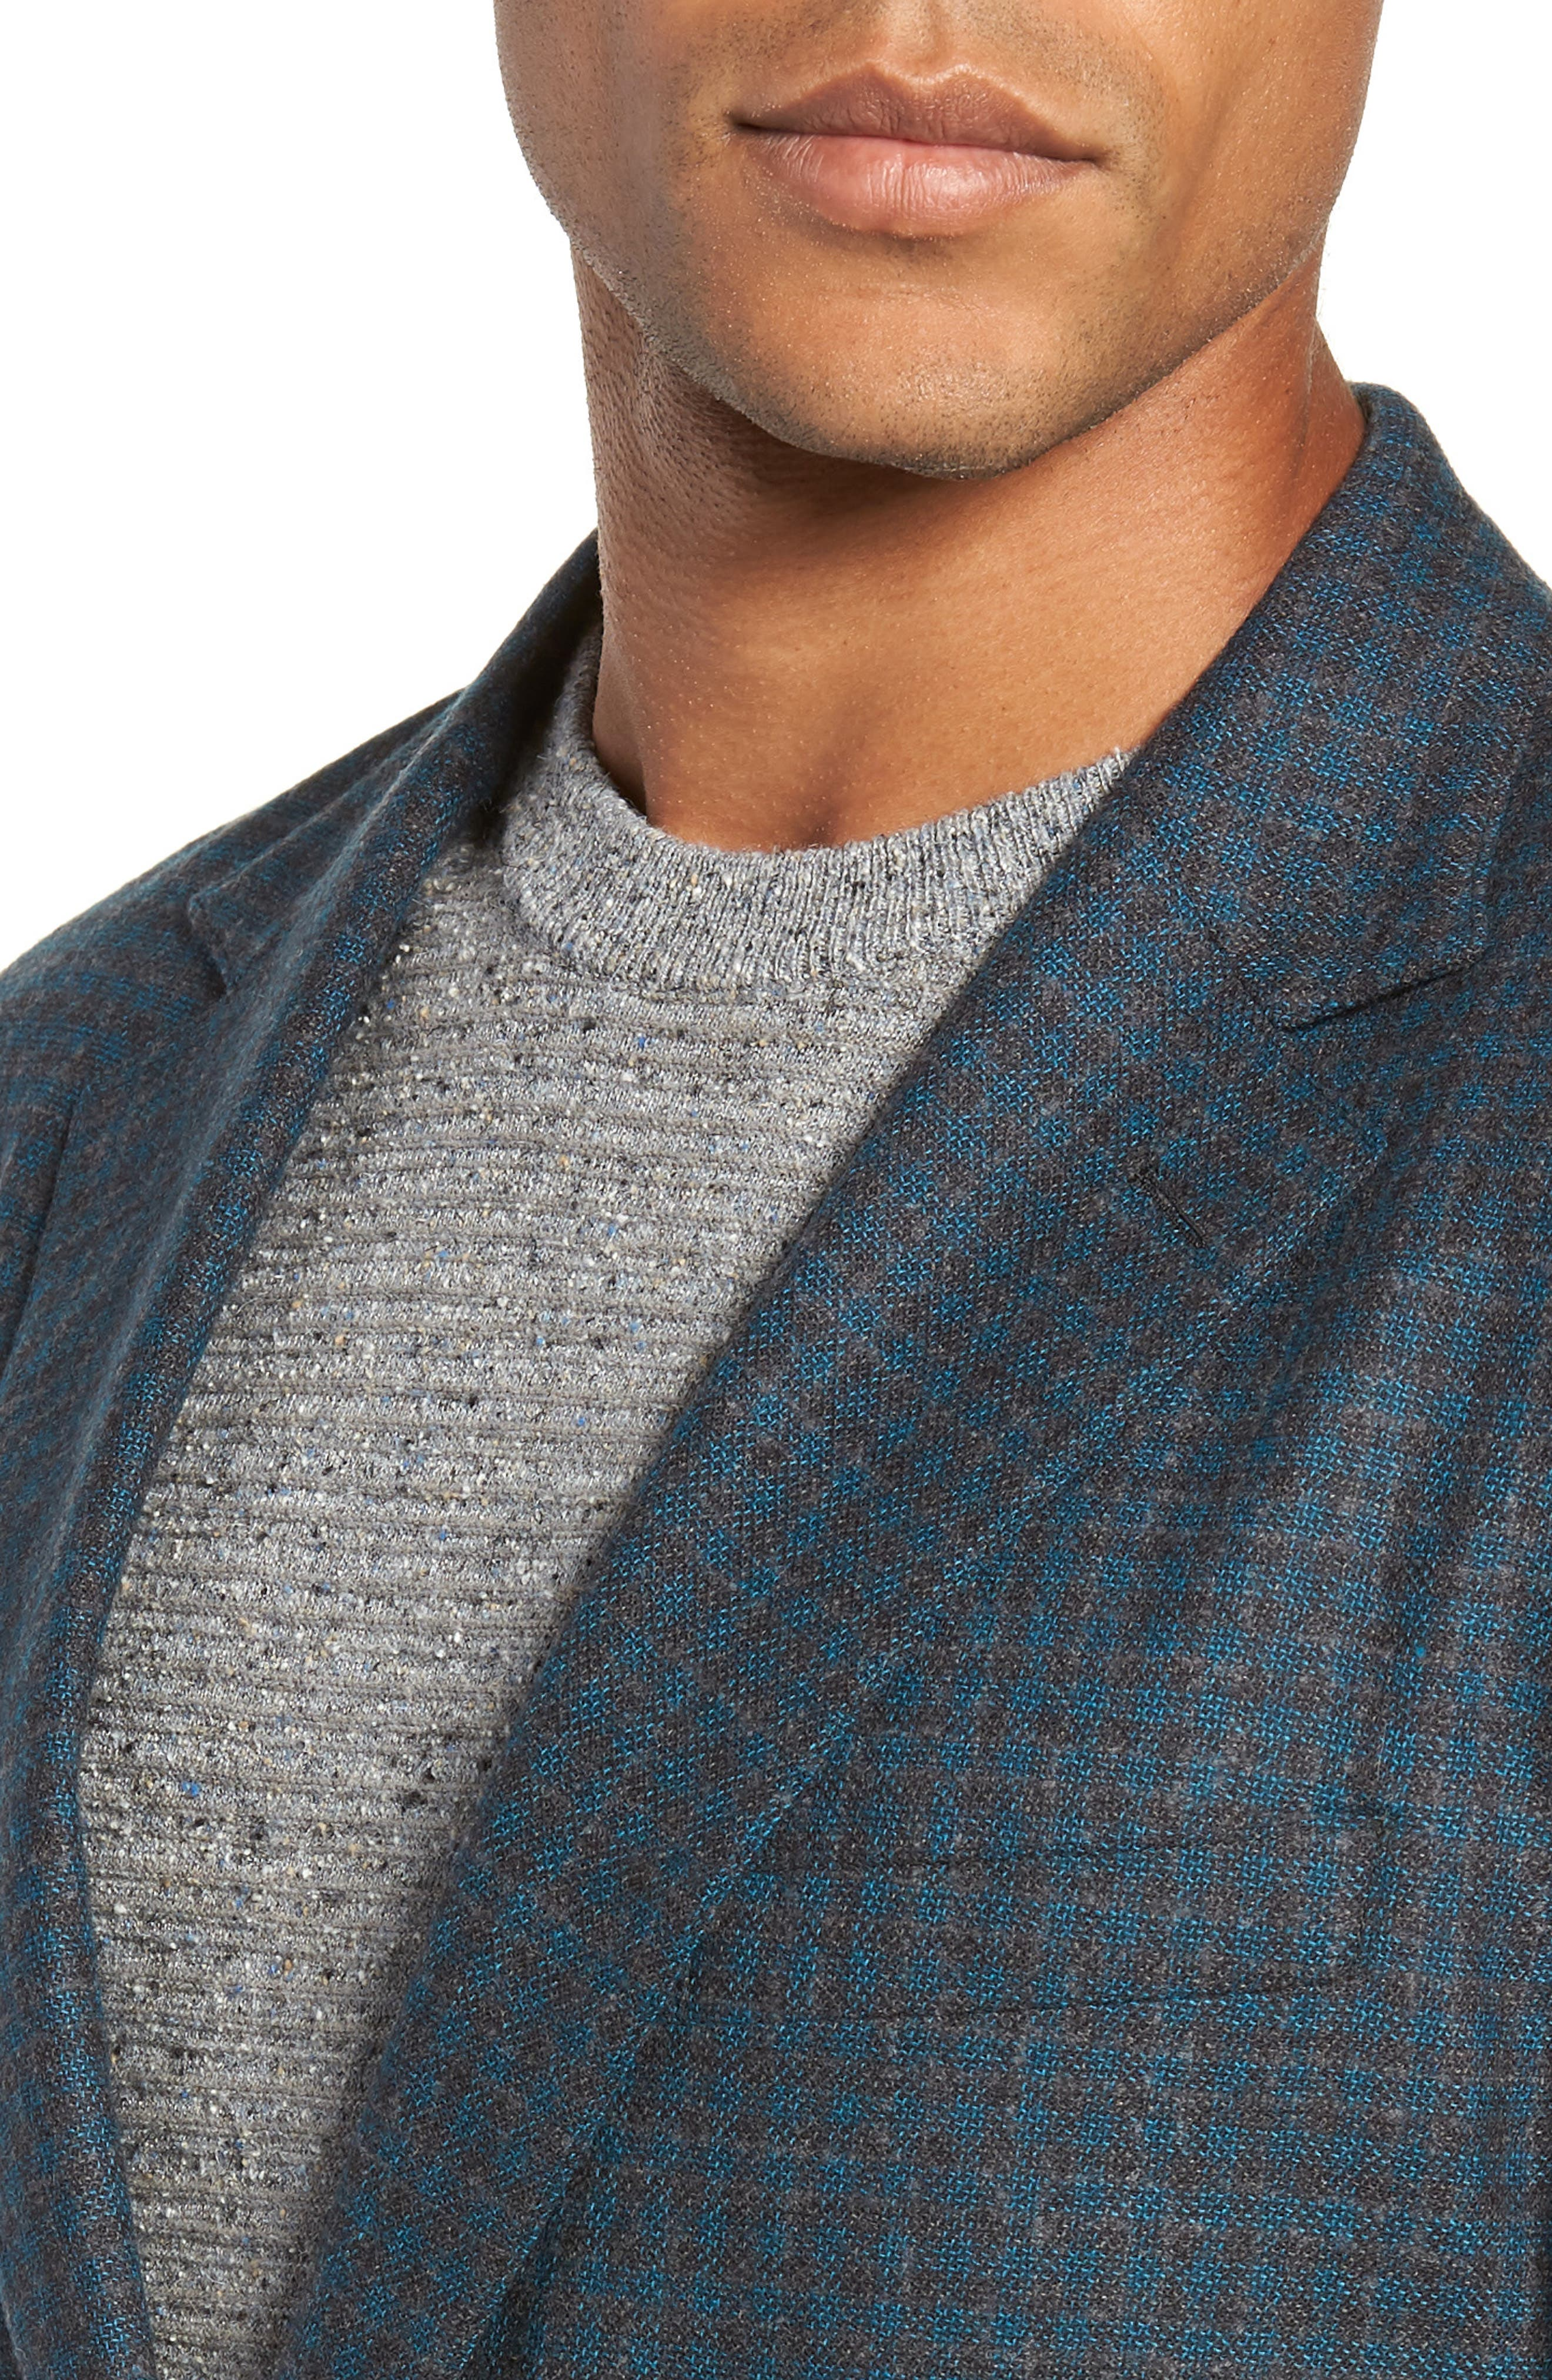 Jetsetter Slim Fit Unconstructed Blazer,                             Alternate thumbnail 4, color,                             TEAL AND GREY PLAID